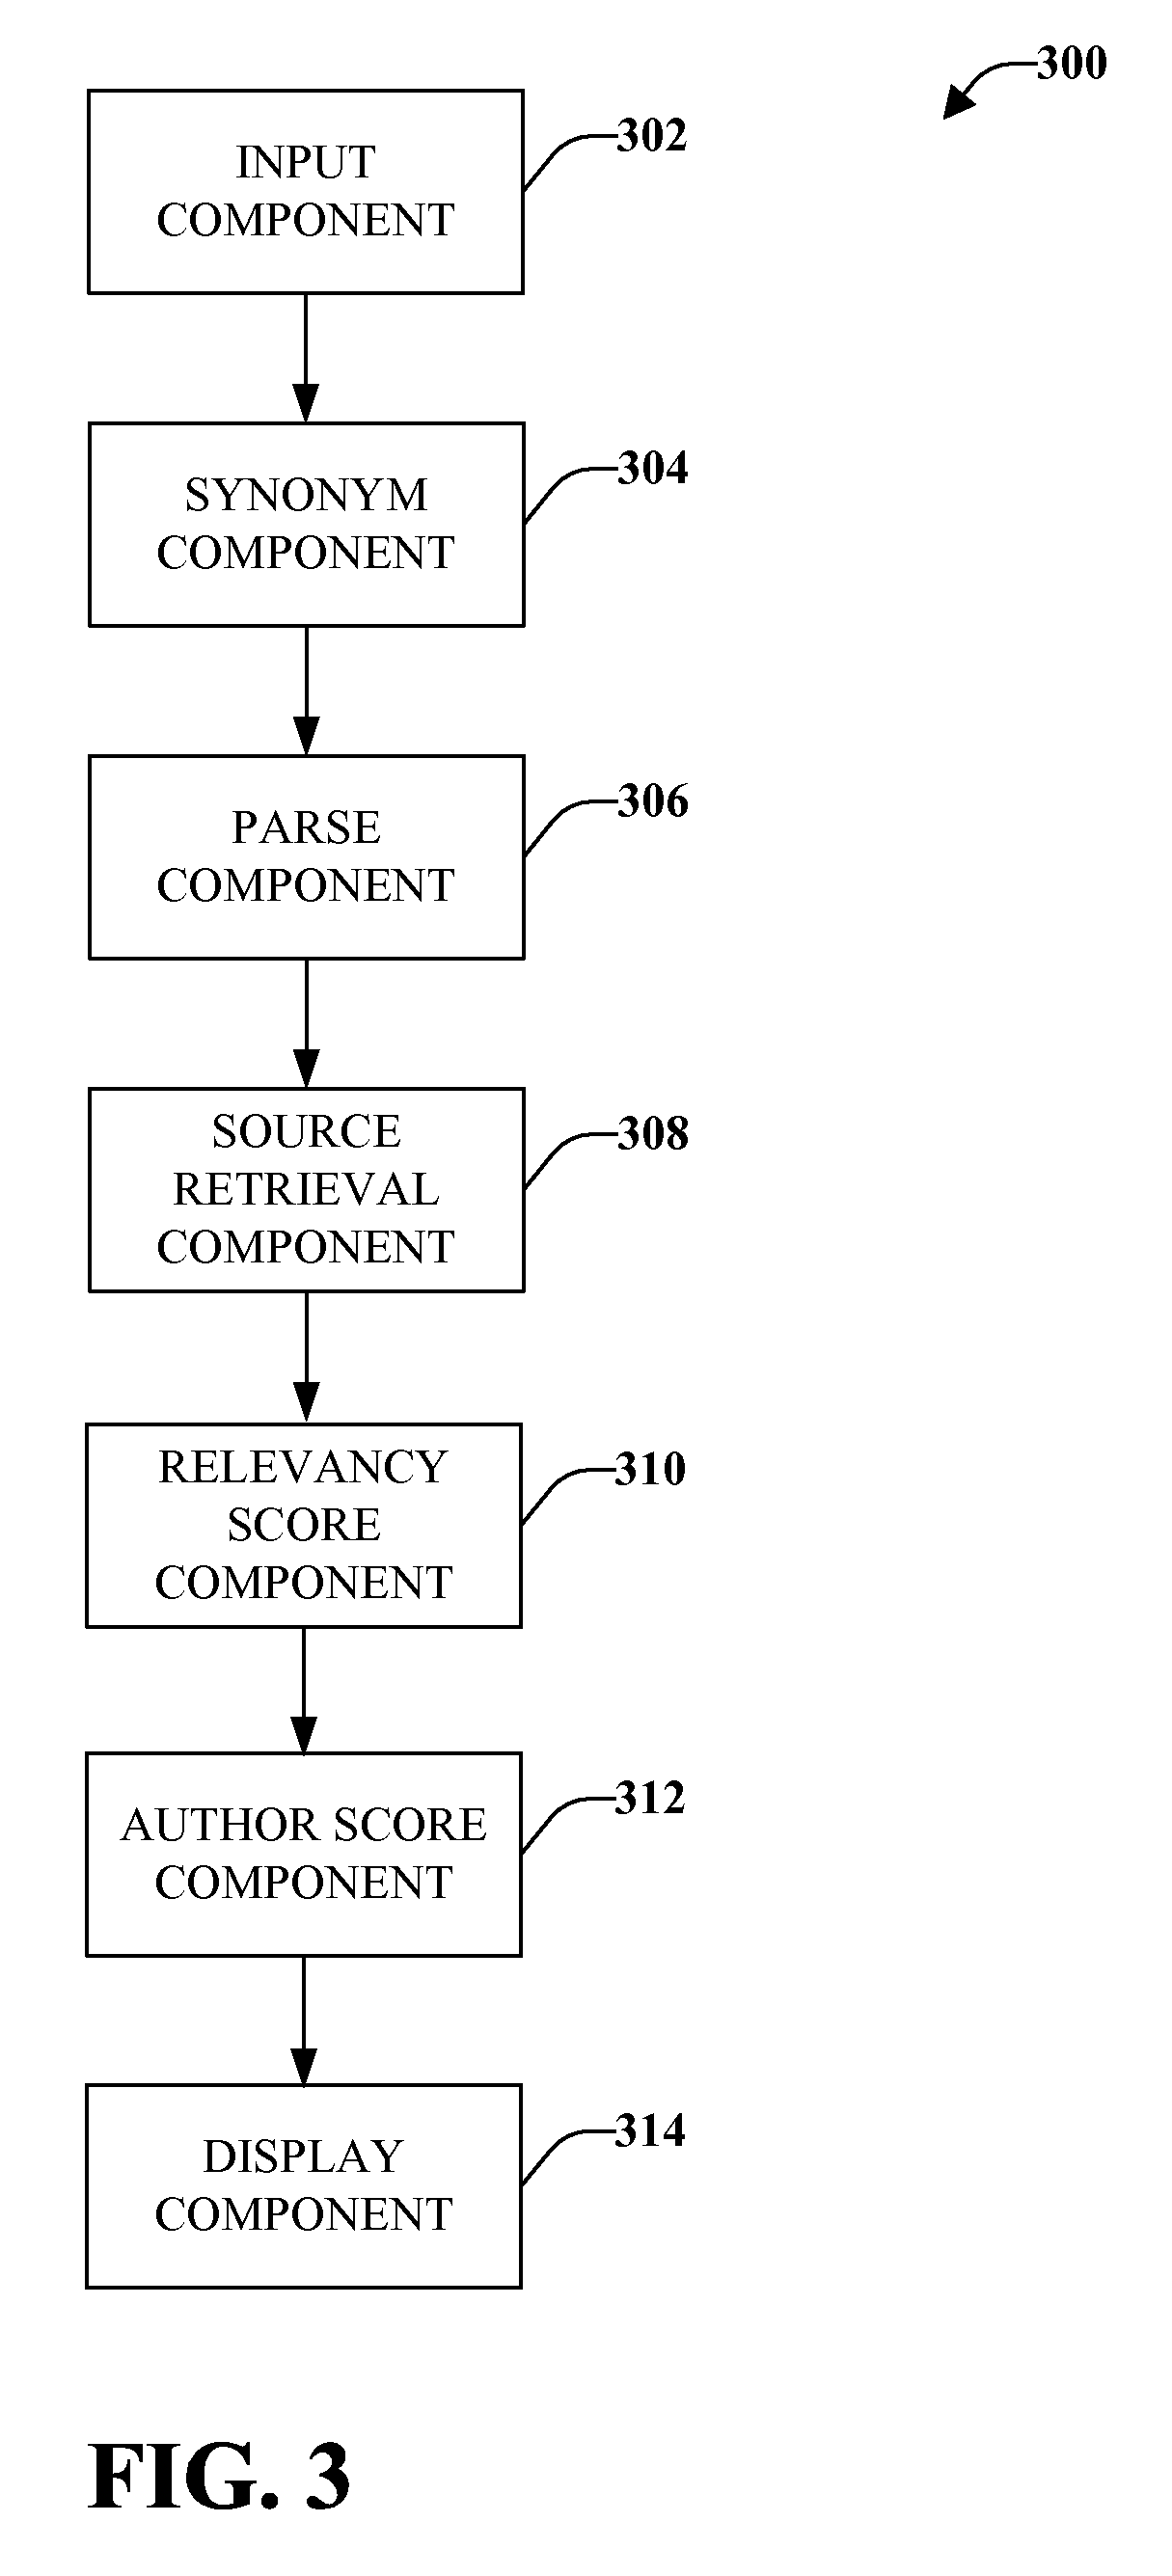 patent literature on a thesis searching A literature review technion libraries technion libraries portal mechanical engineering library site thesis search patent search.